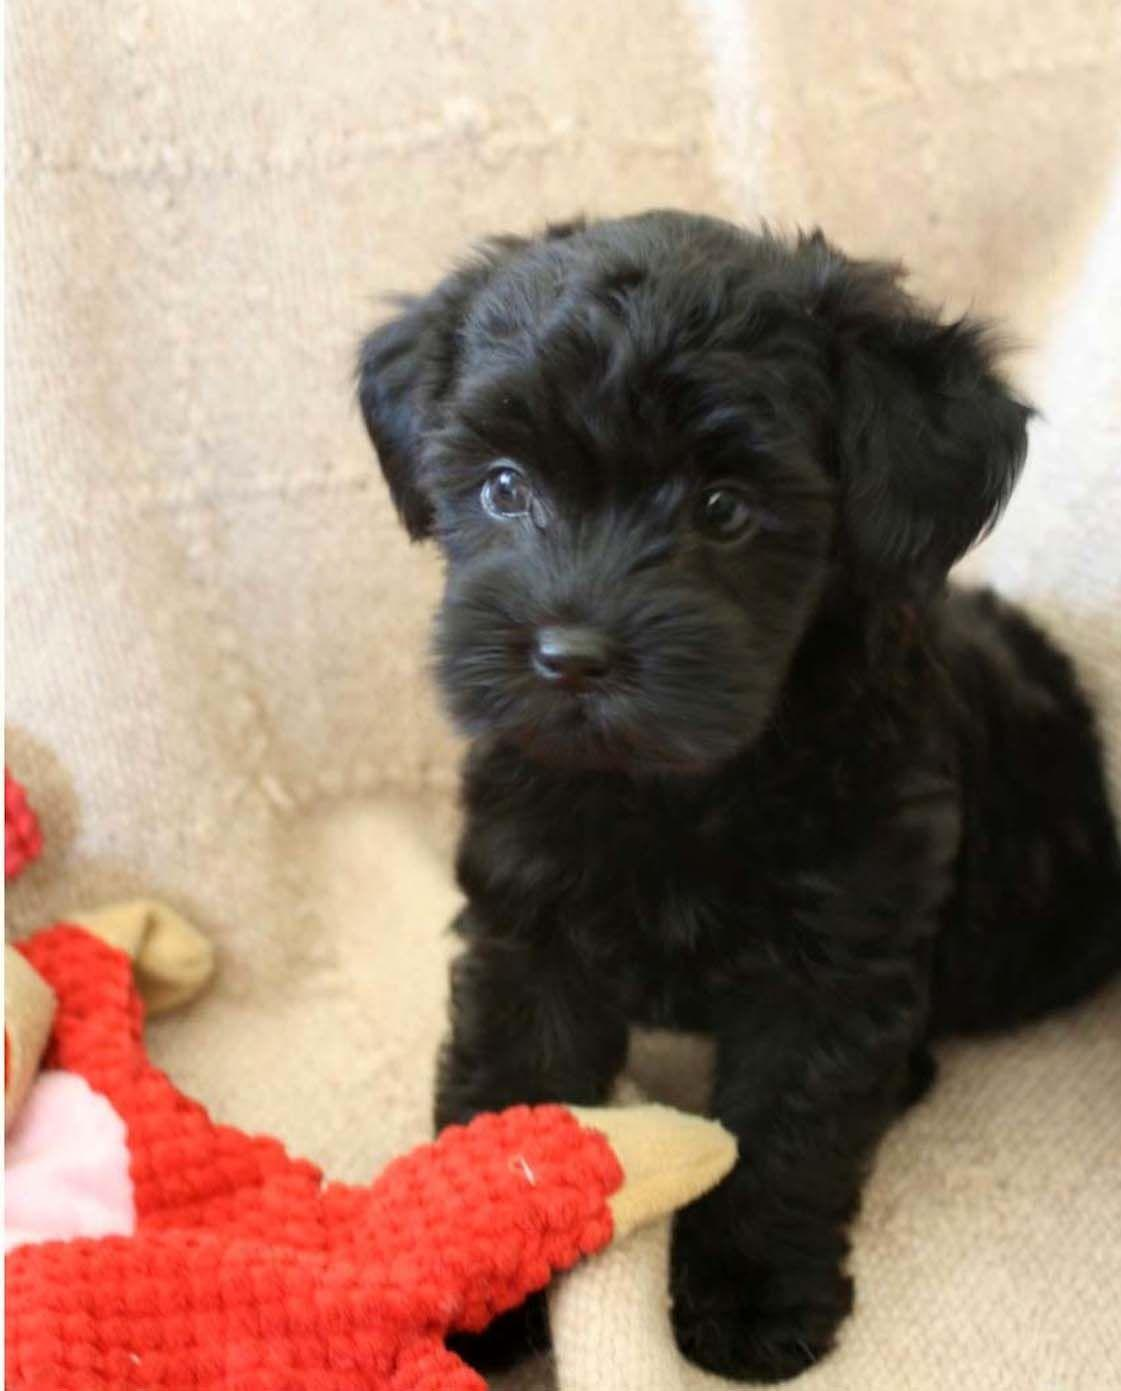 Black Mini Toy Poodle | Childrens Toy WallPaper | dogs | Pinterest ...